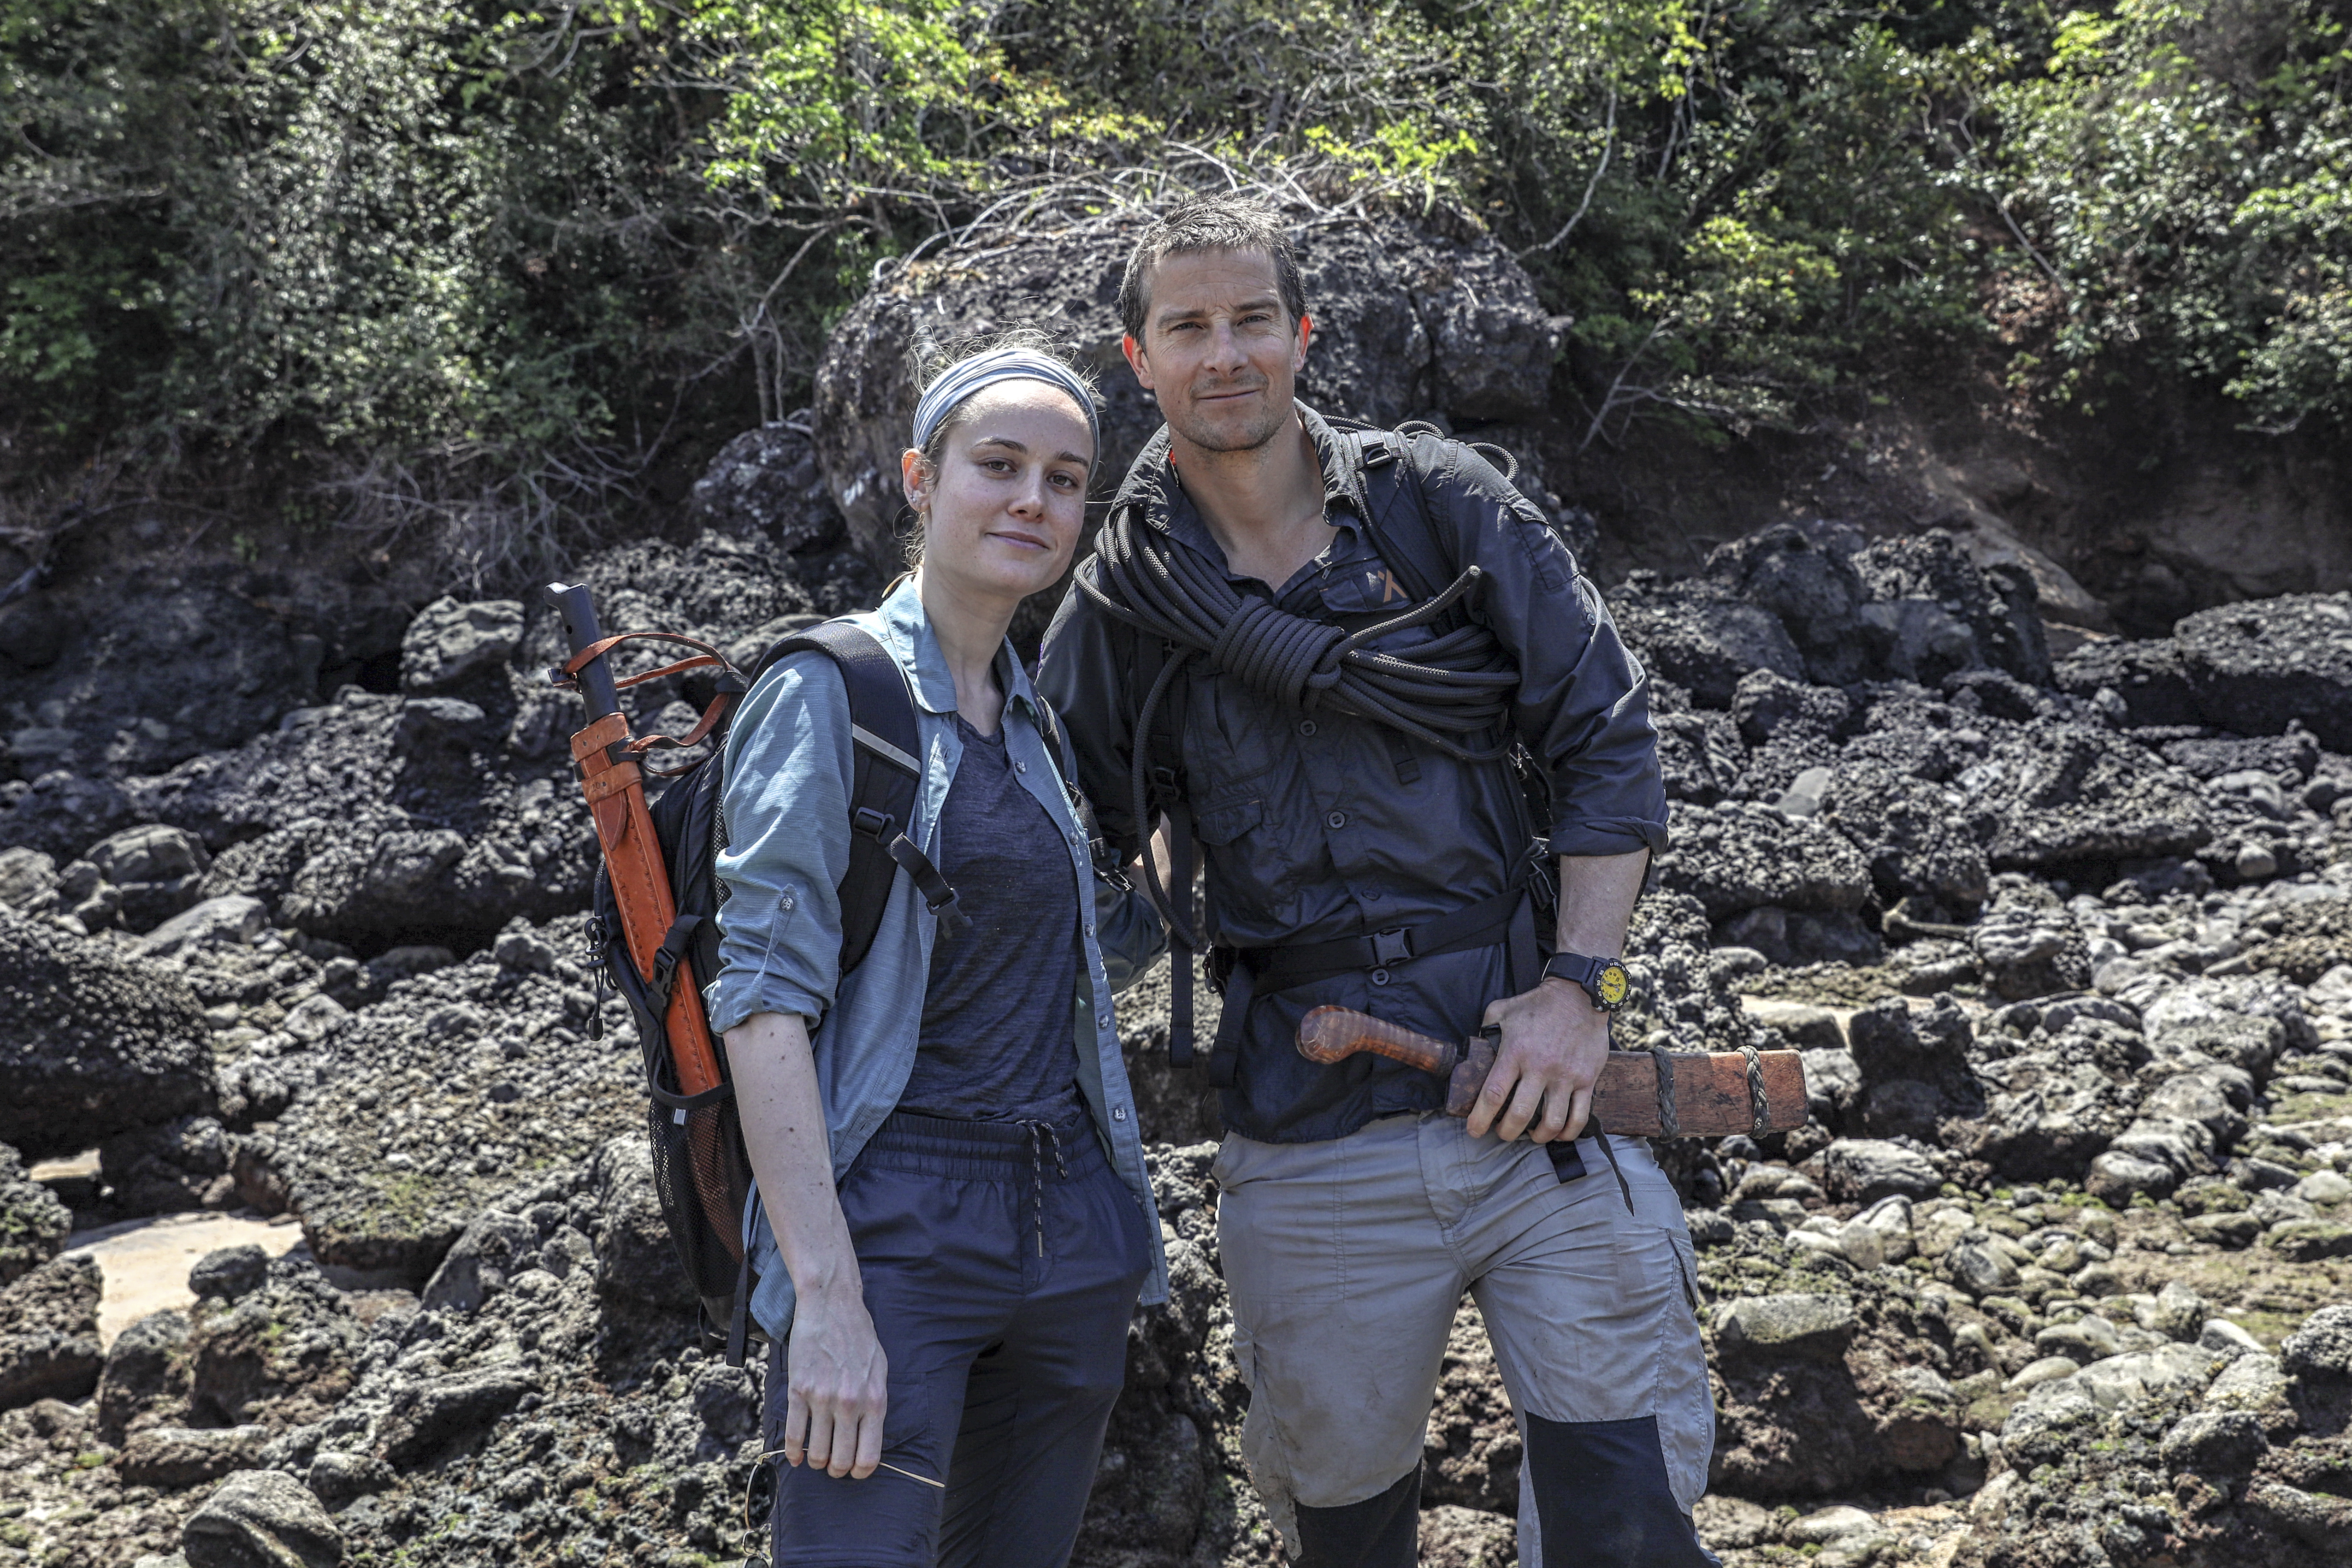 Bear Grylls Just Wants You (And His Famous Friends) To Go On An Adventure